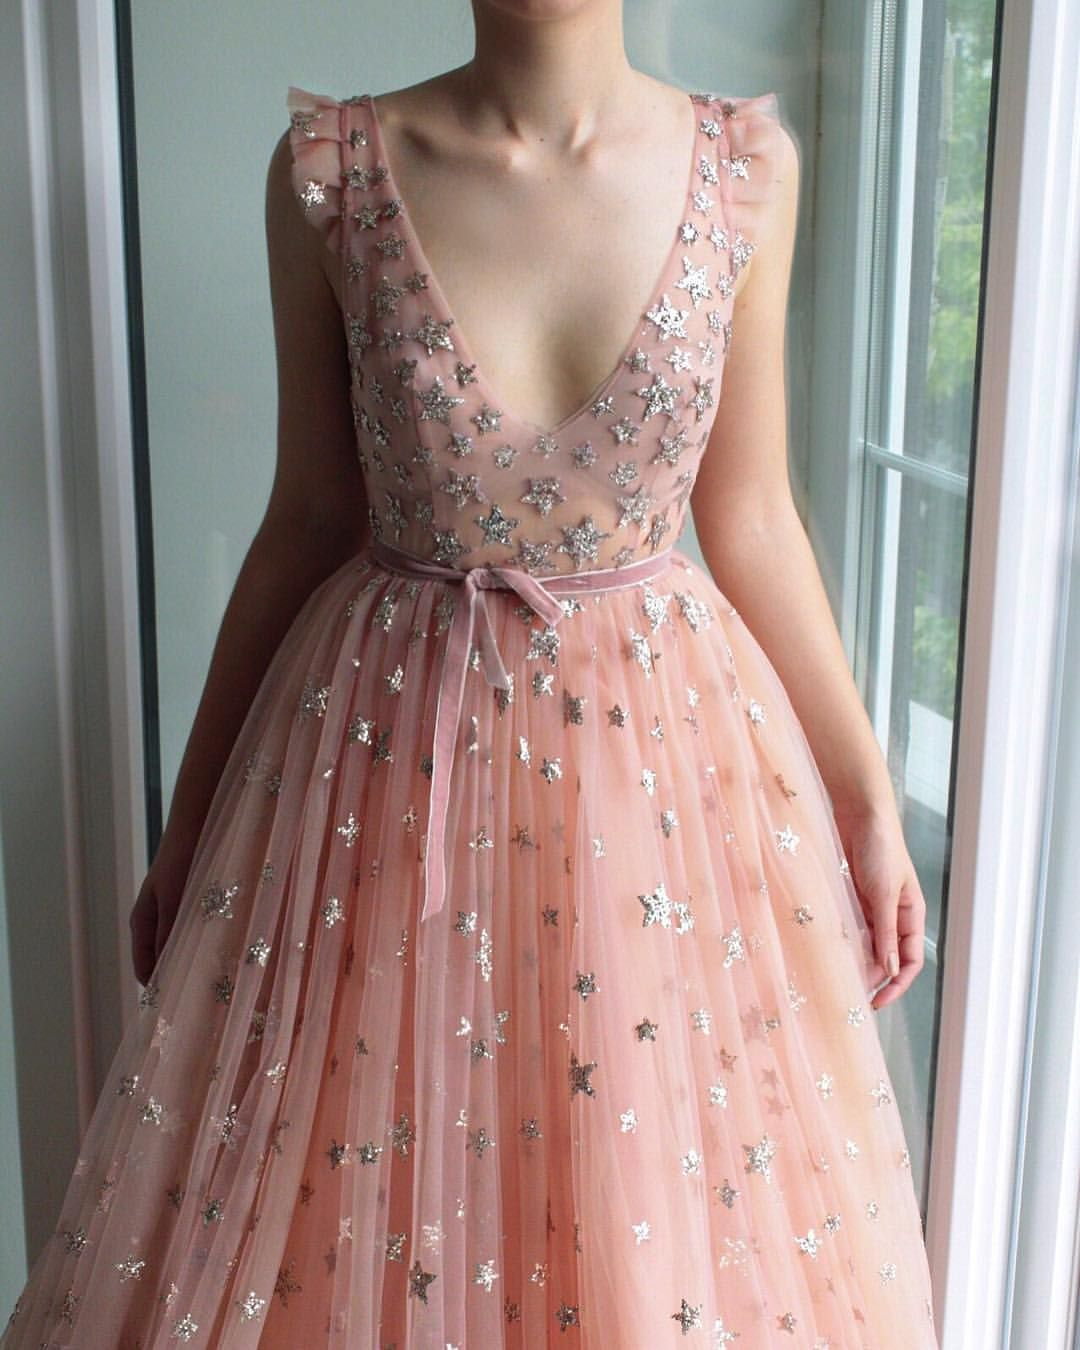 Pin by Katie Adams on Clothes and makeup | Pinterest | Star, Wedding ...